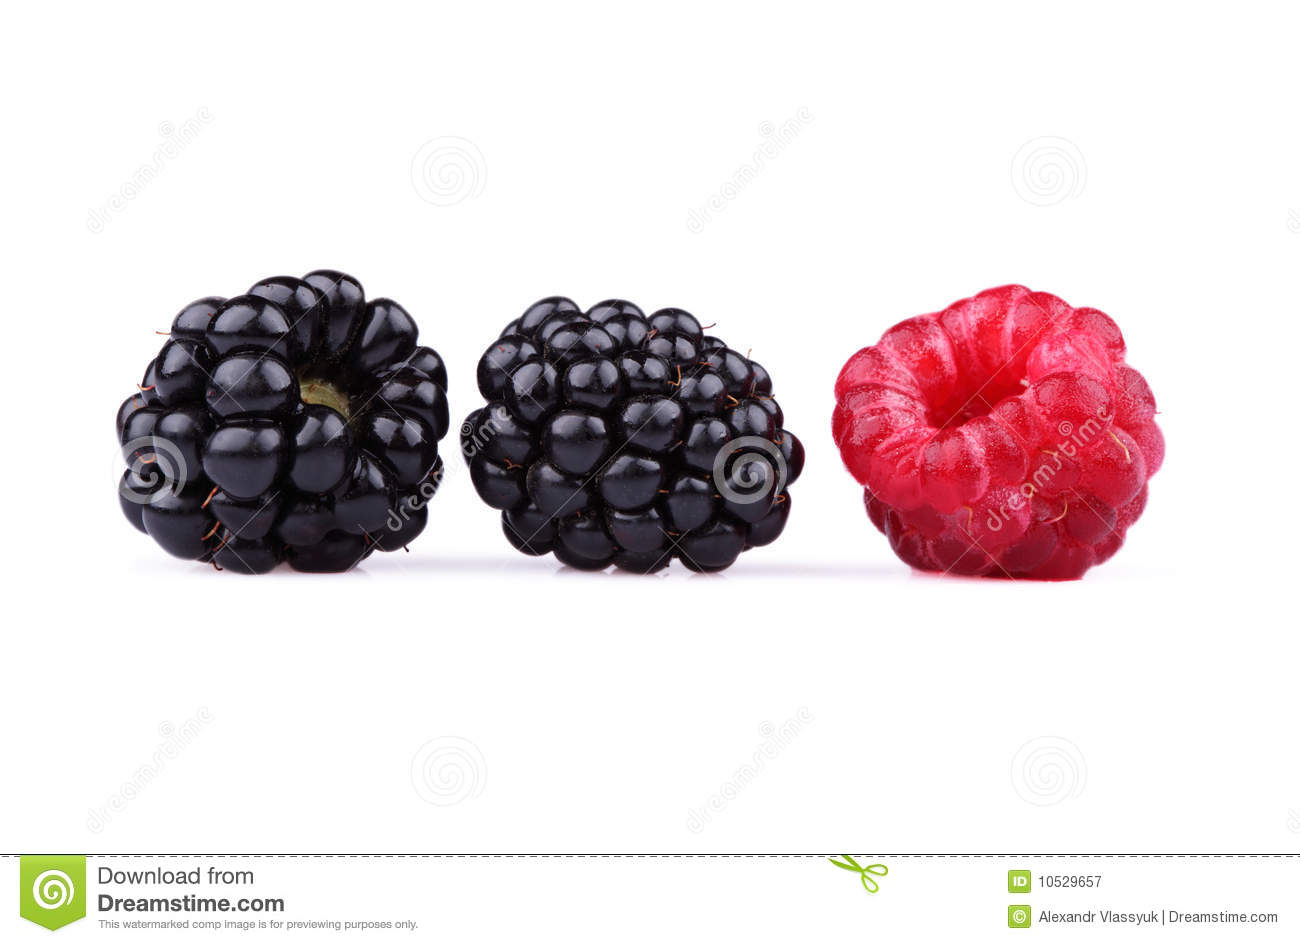 The blackberry and raspberry